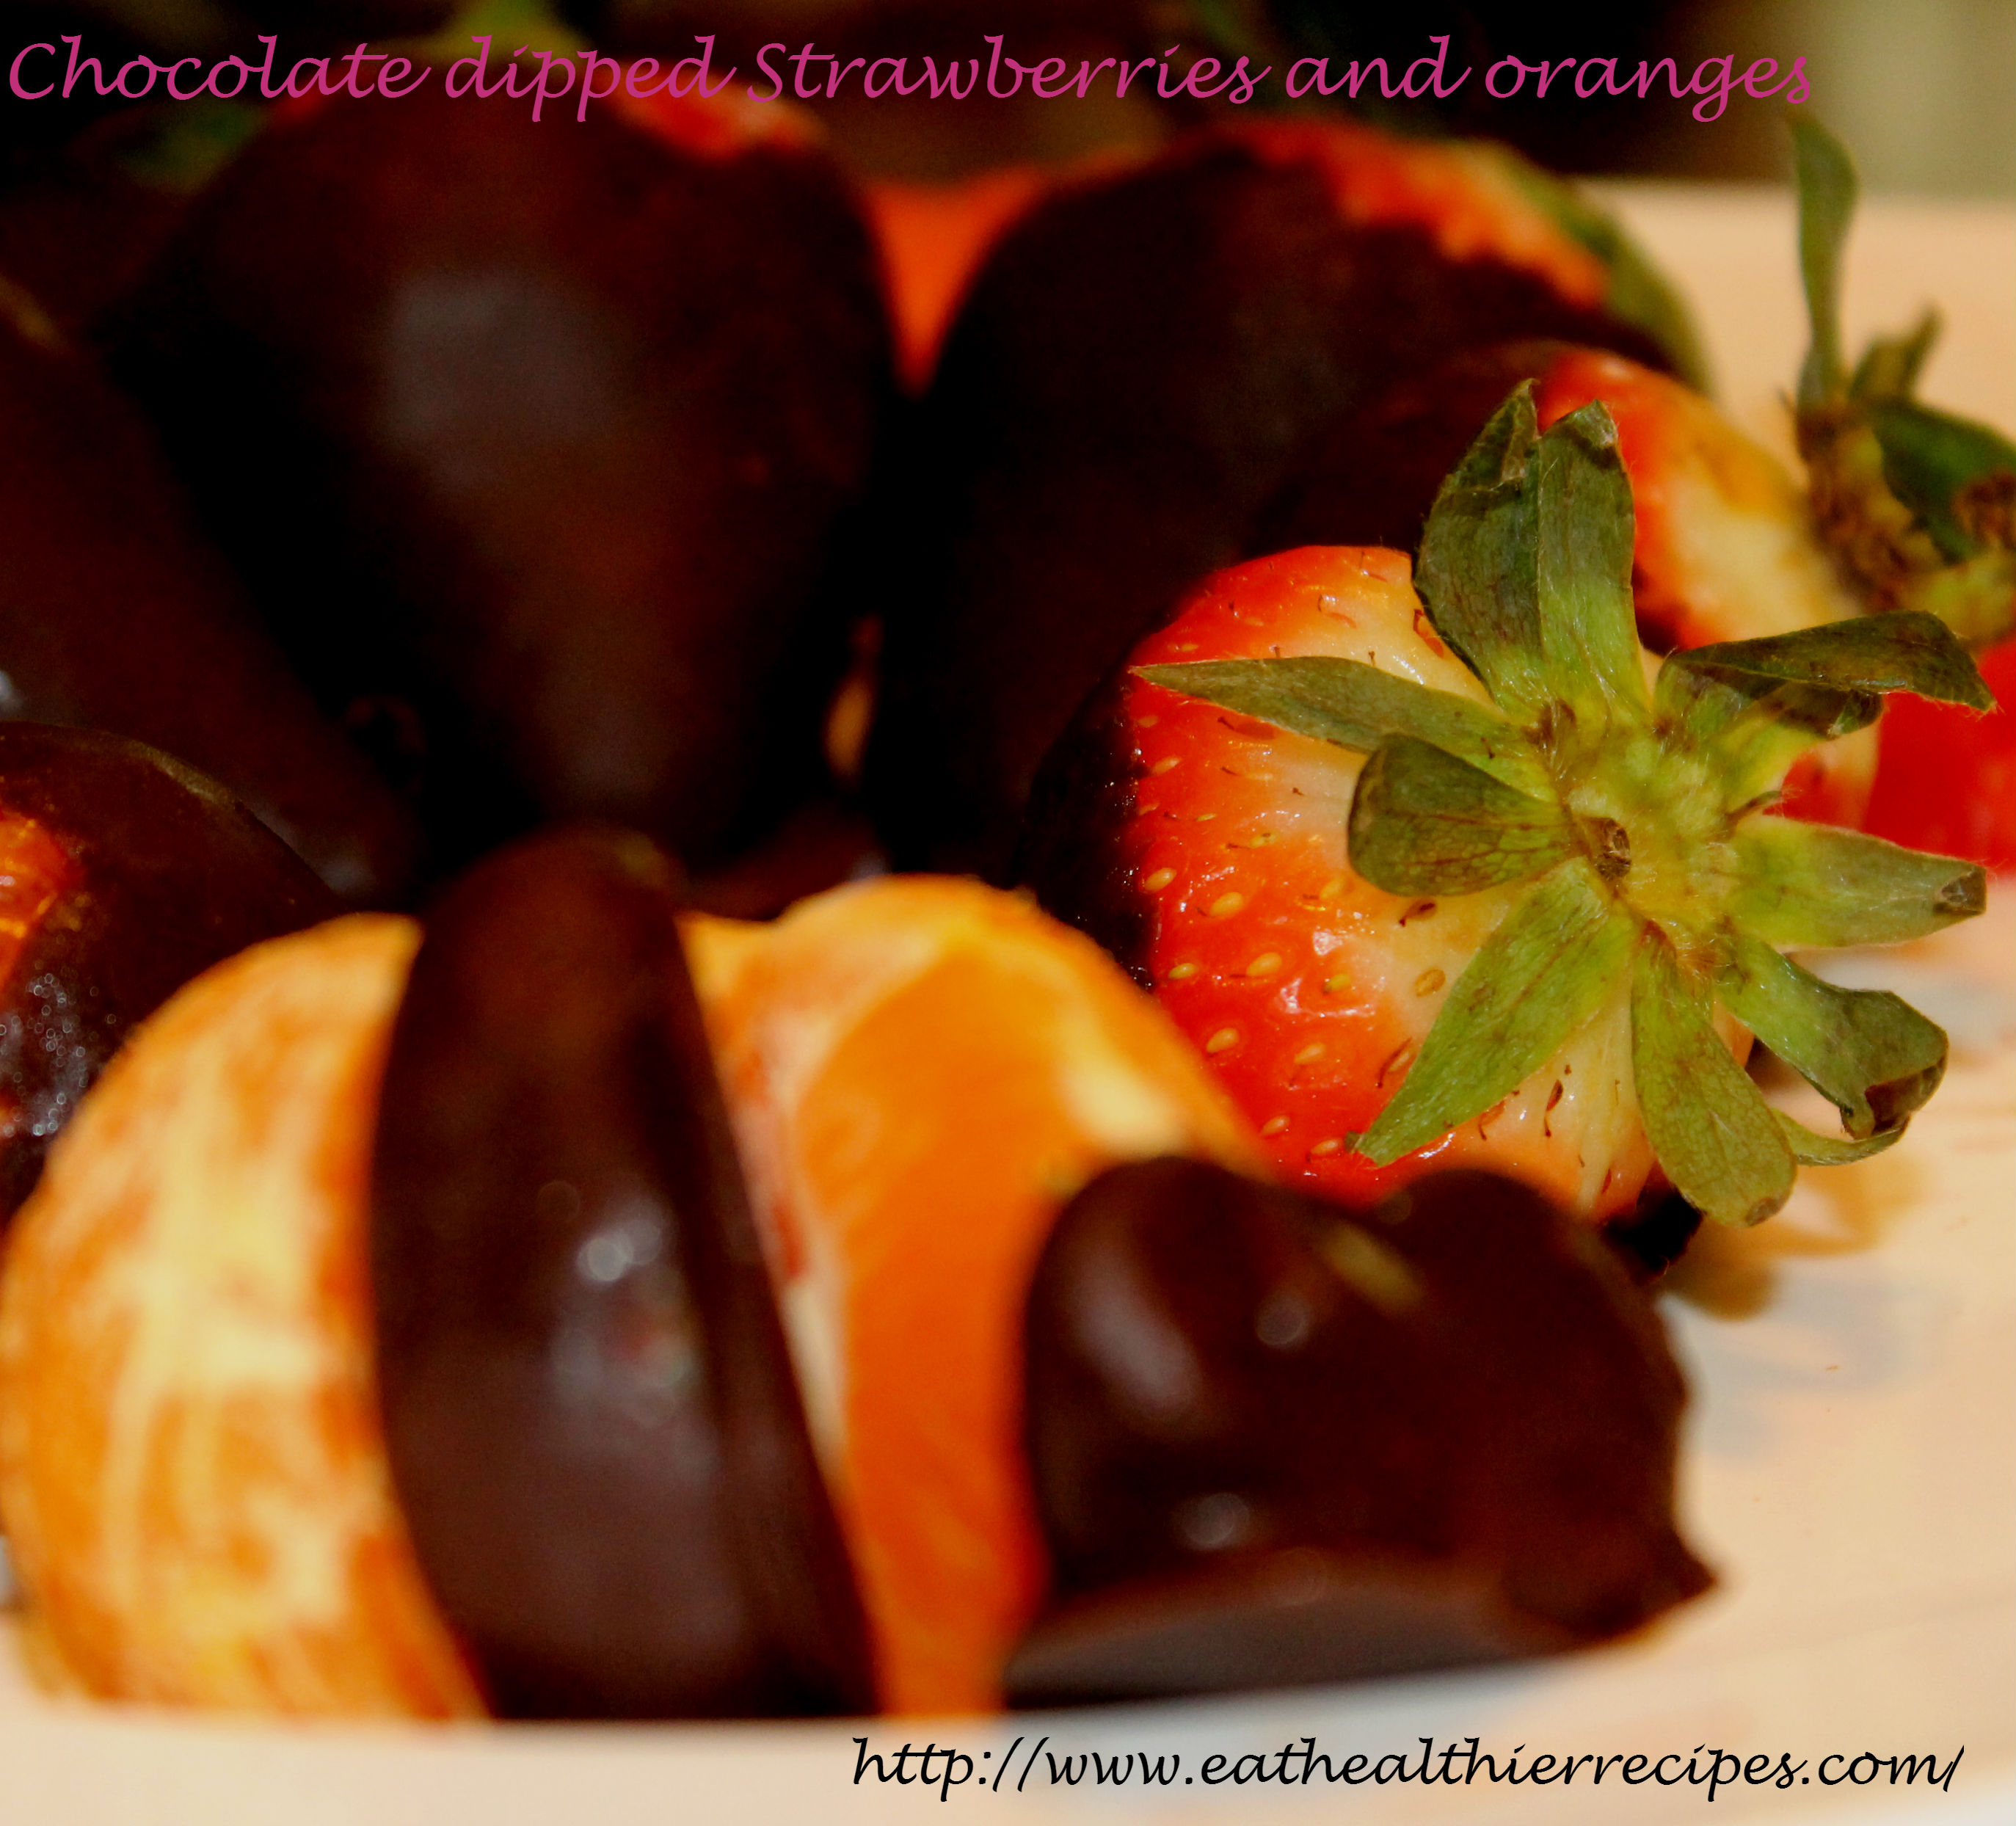 Chocolate dipped Strawberries and Oranges